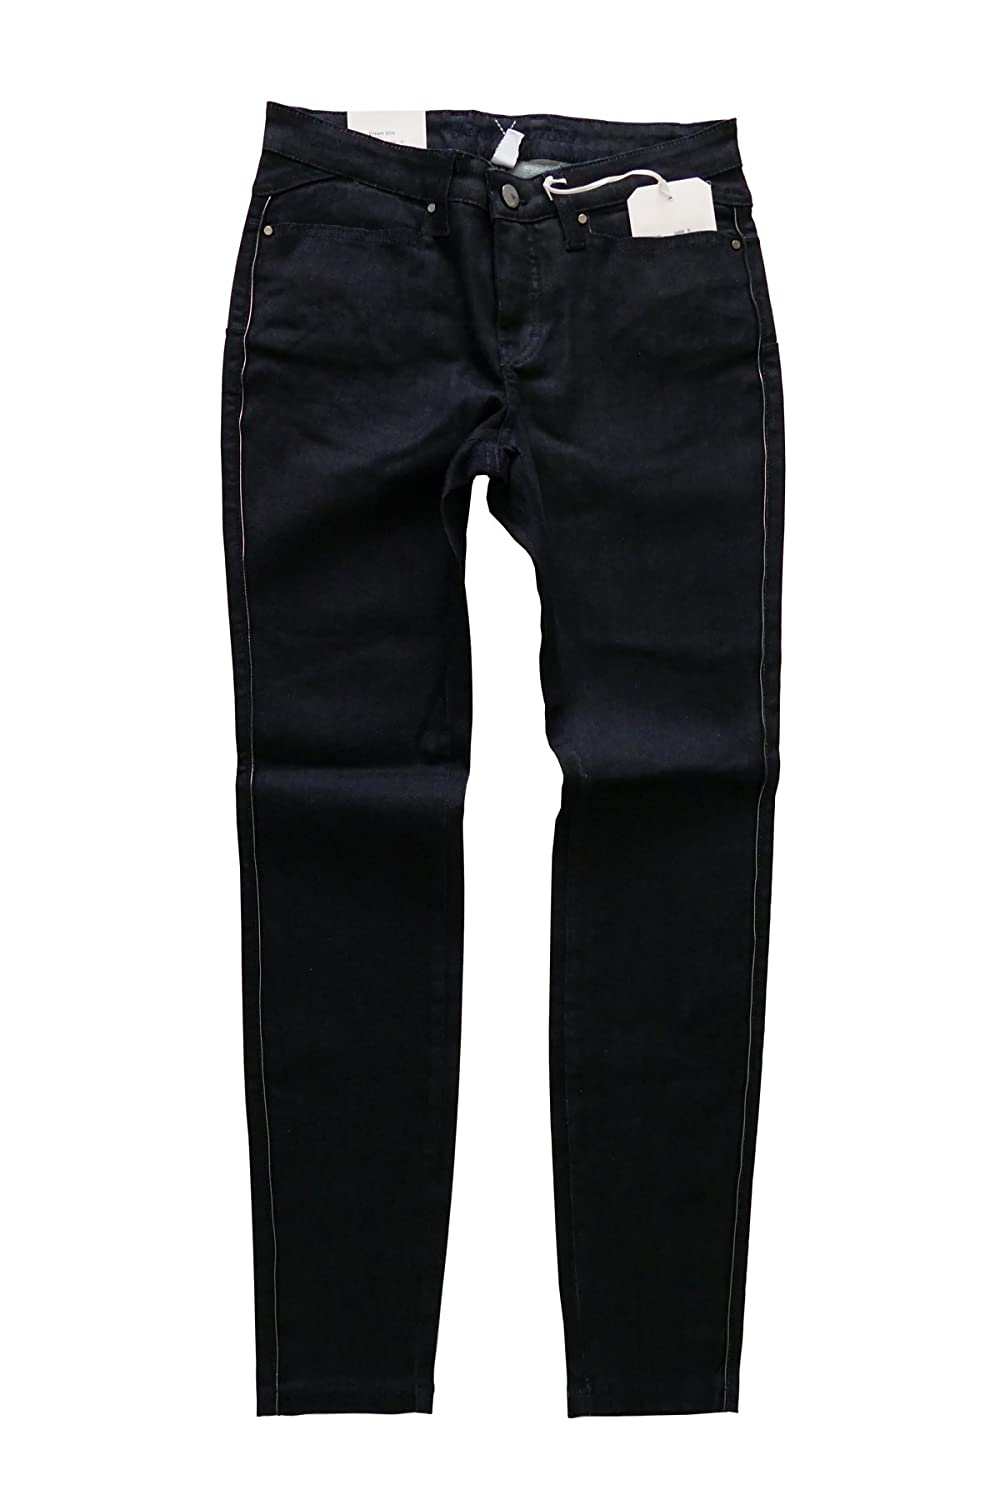 MAC Women's Maternity Jeans